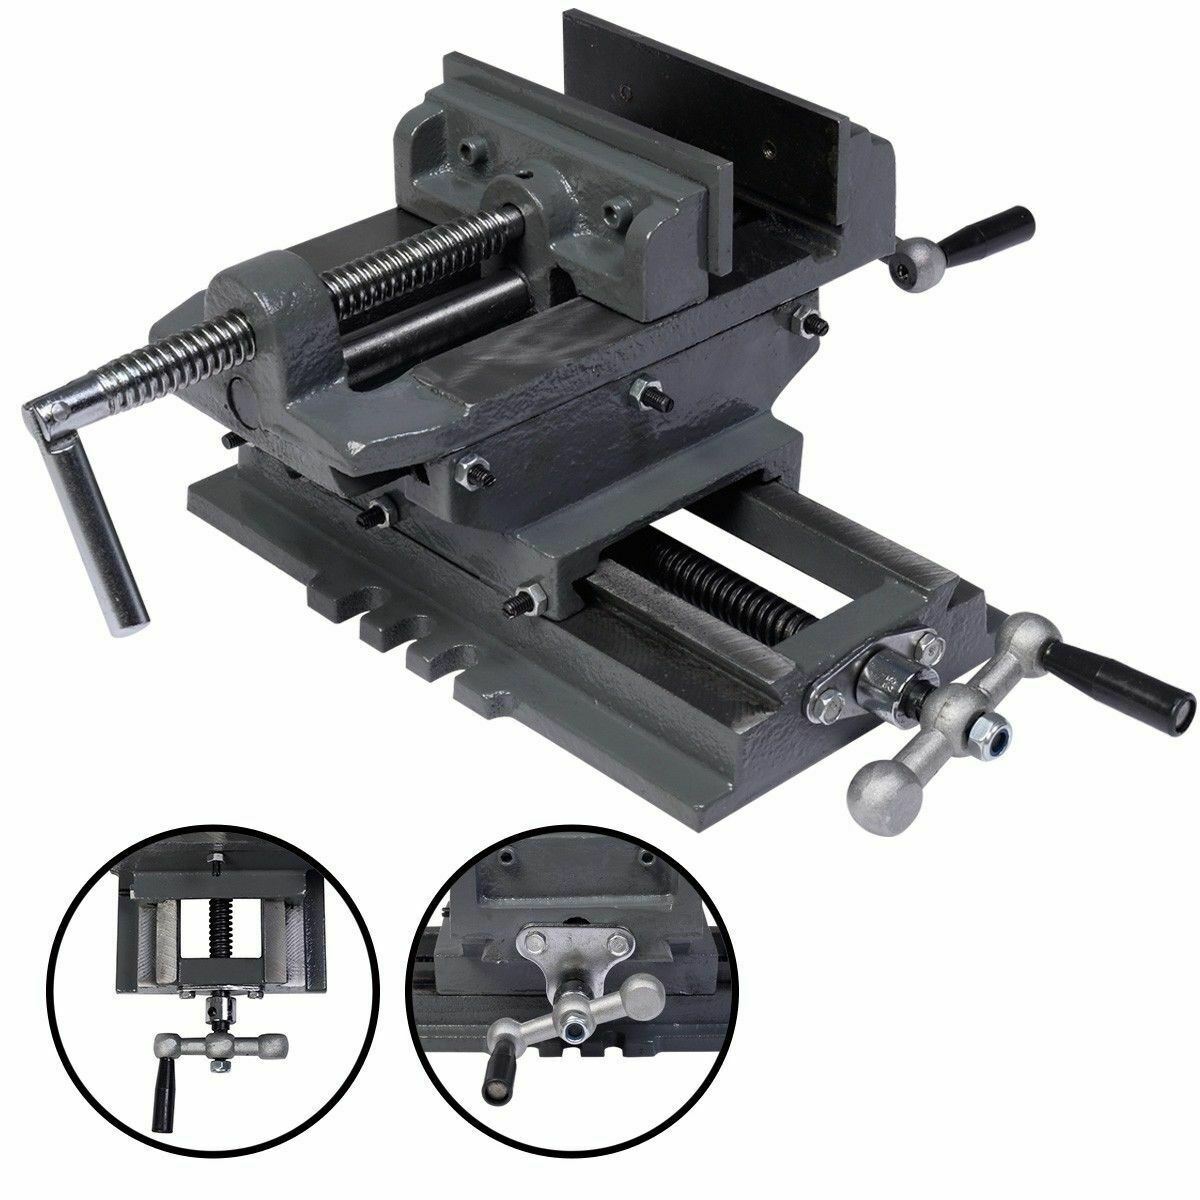 "New 5"" Cross Drill Press Vise X-Y Clamp Machine Slide Metal"